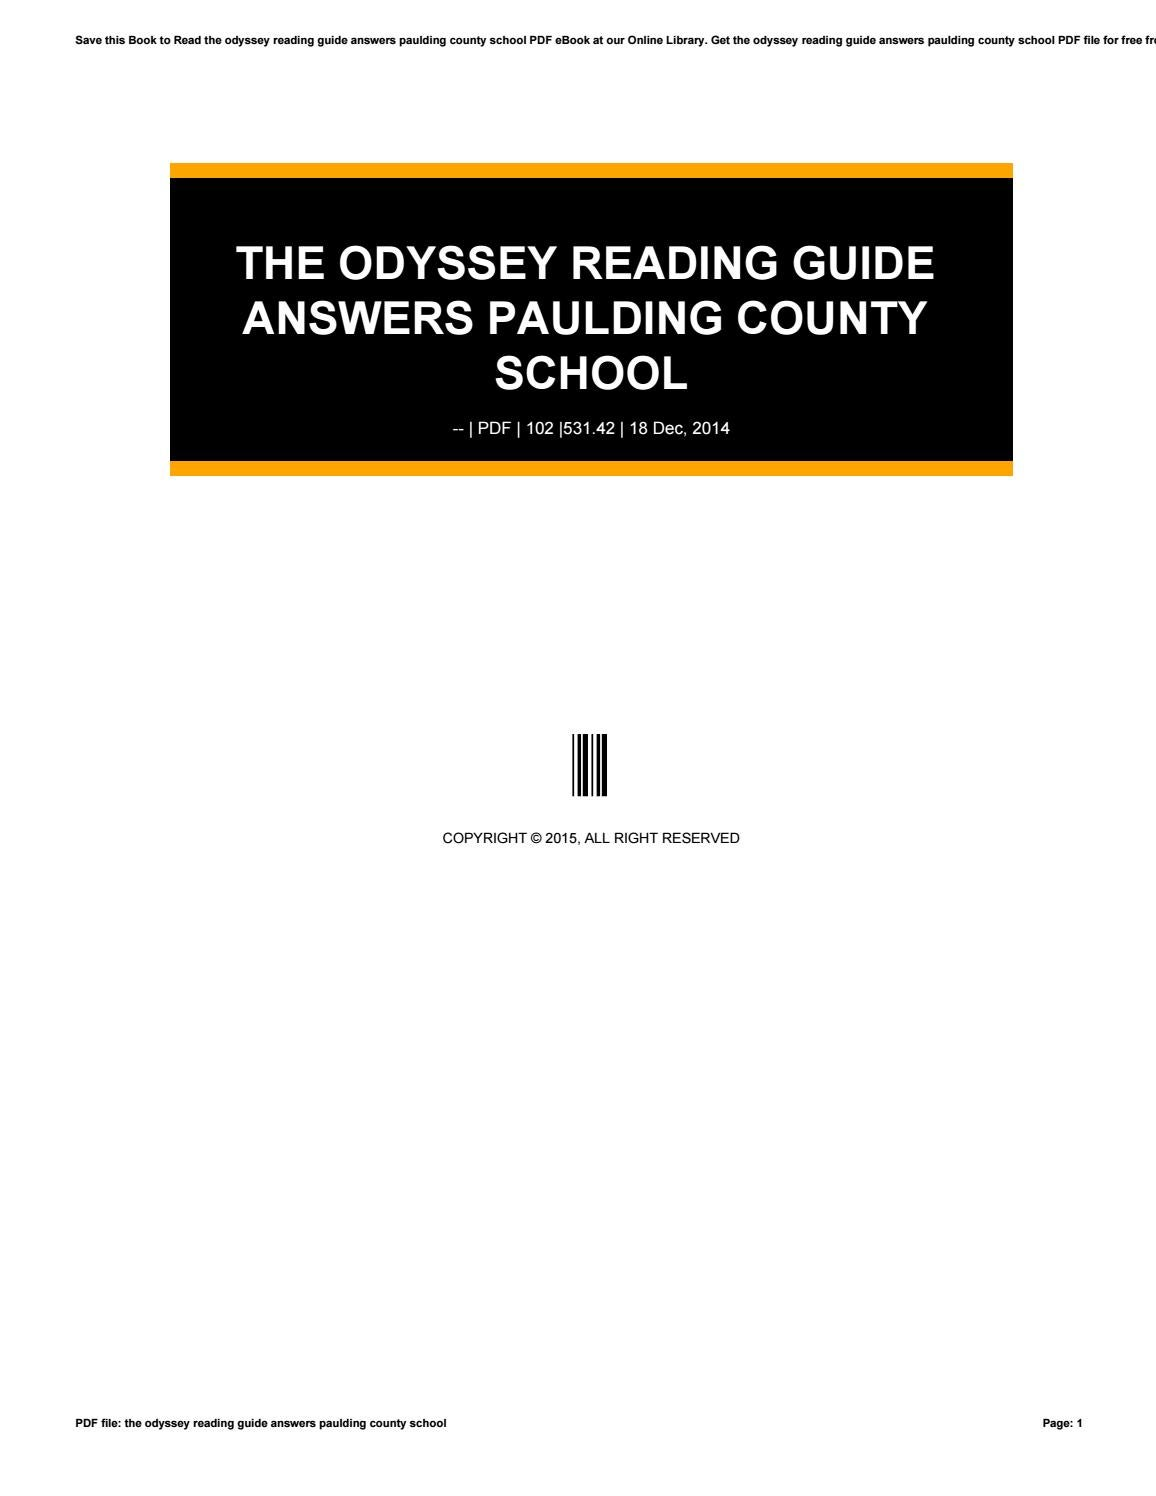 The odyssey reading guide answers paulding county school by t7767 - issuu